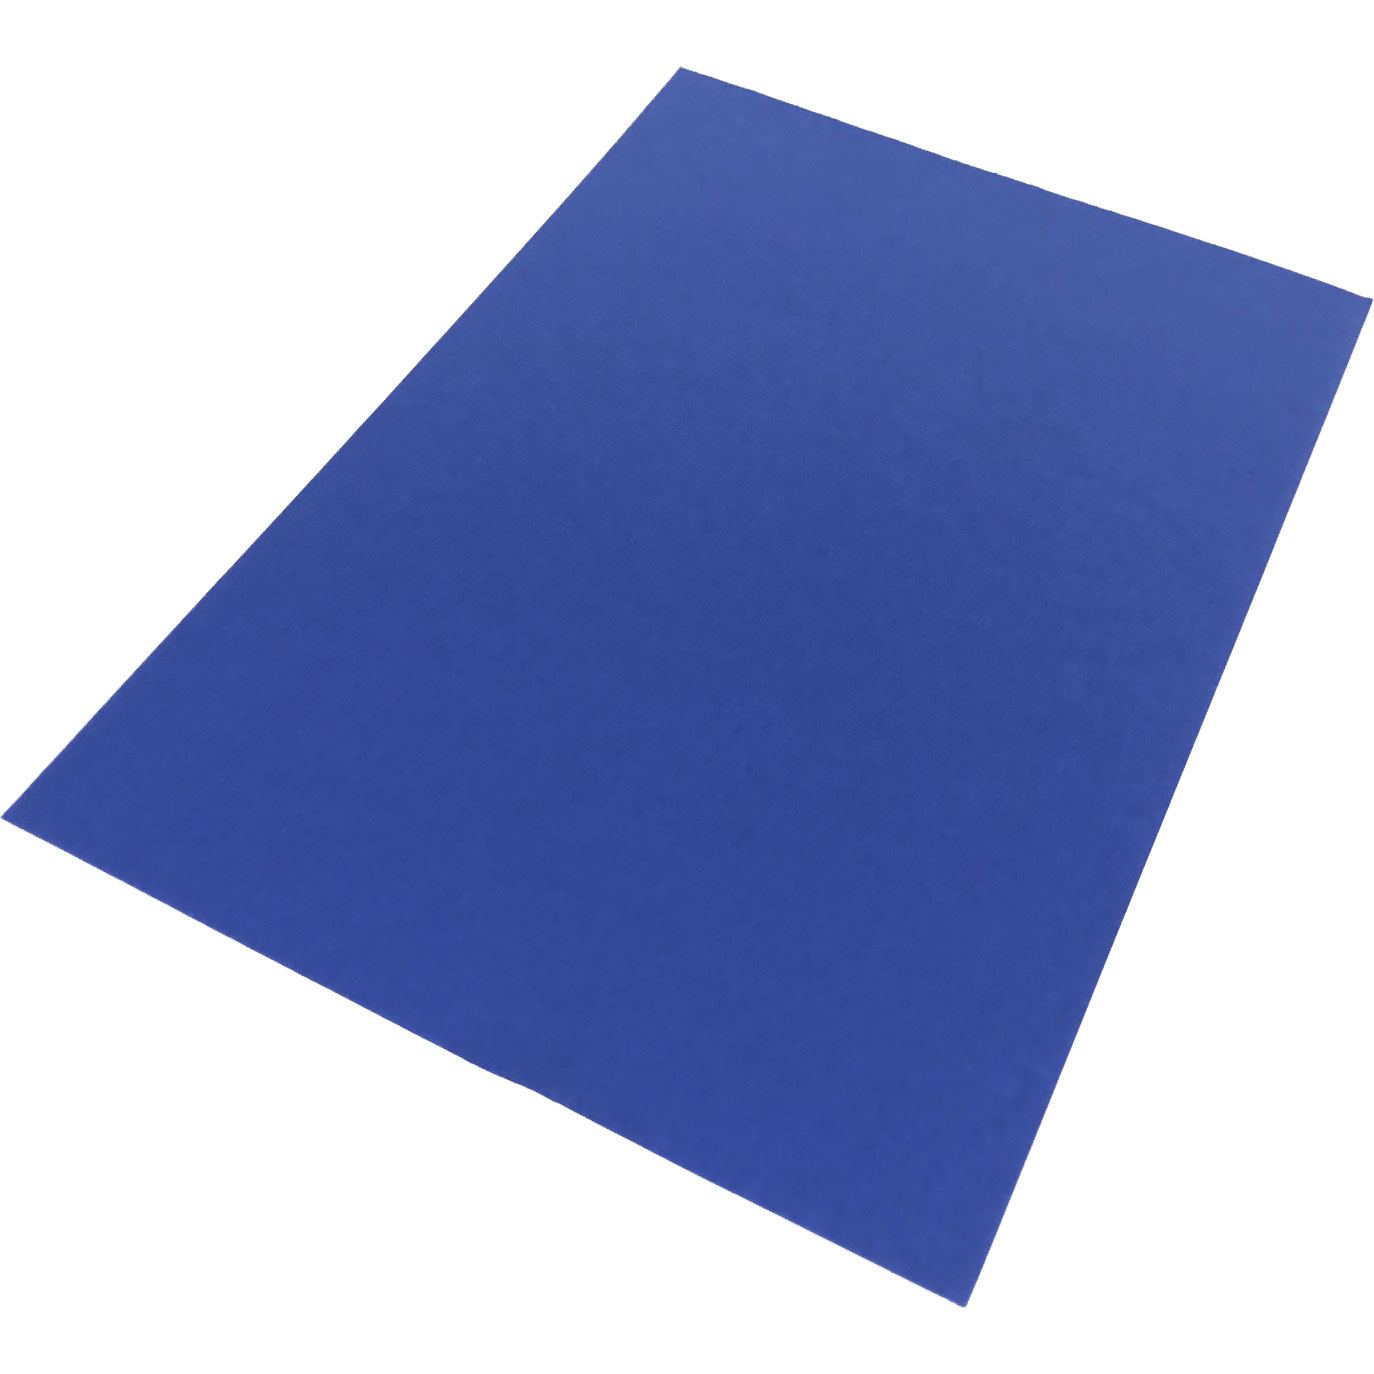 Leitz A4 Royal-Blue Linen Binding Cover Boards (1000)